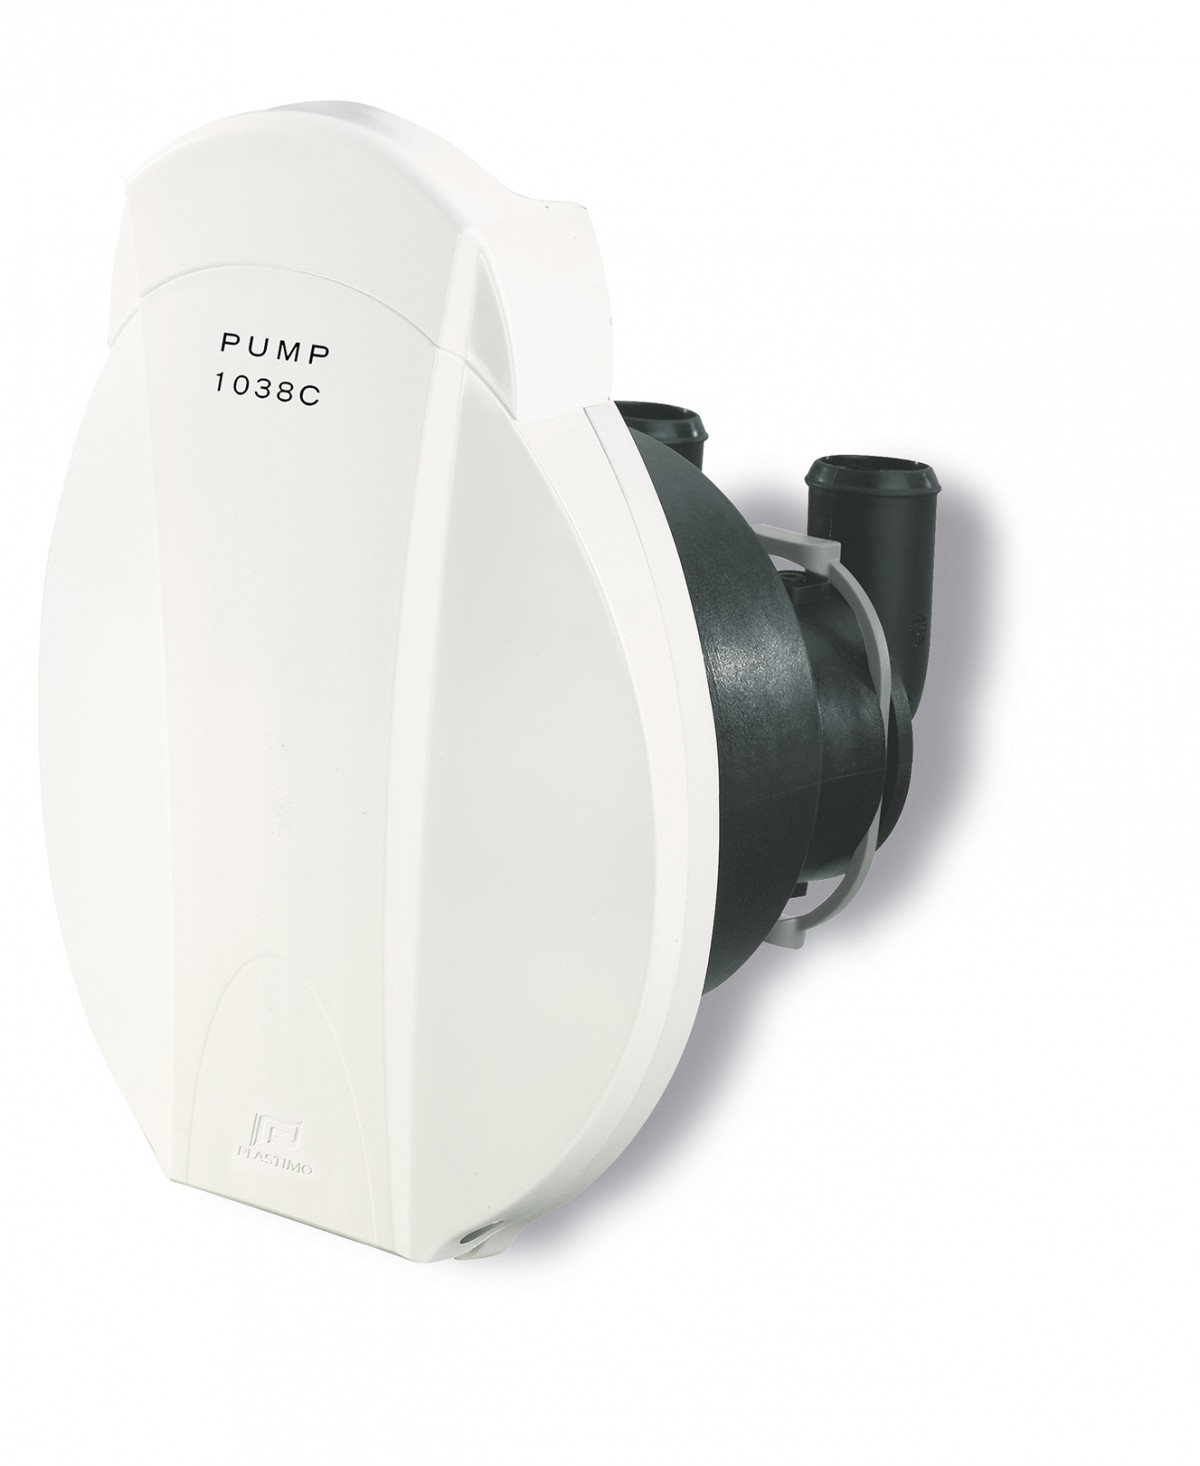 Pump 925C & 1038C : compact with integrated handle